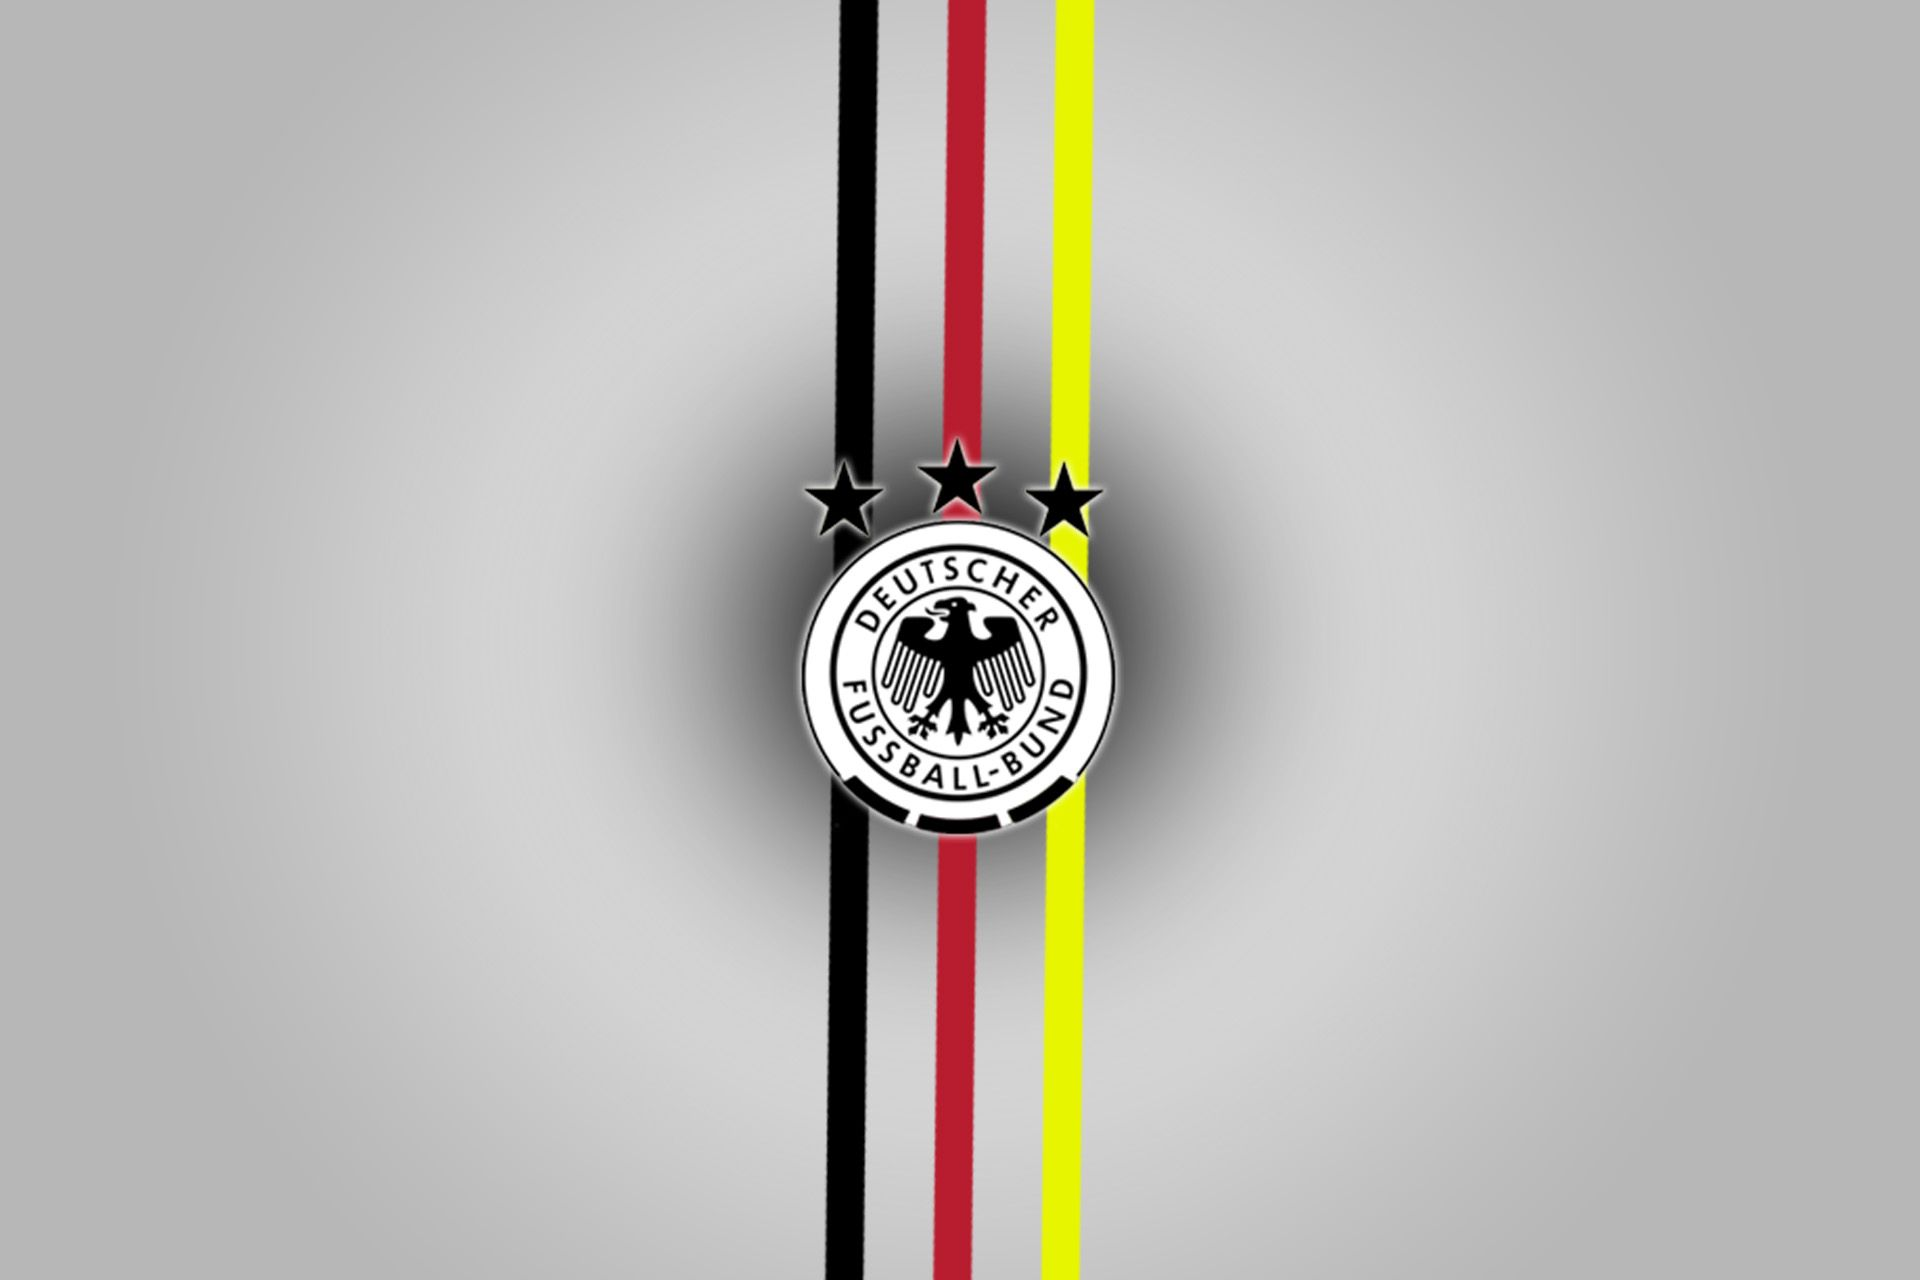 image of germany's flag